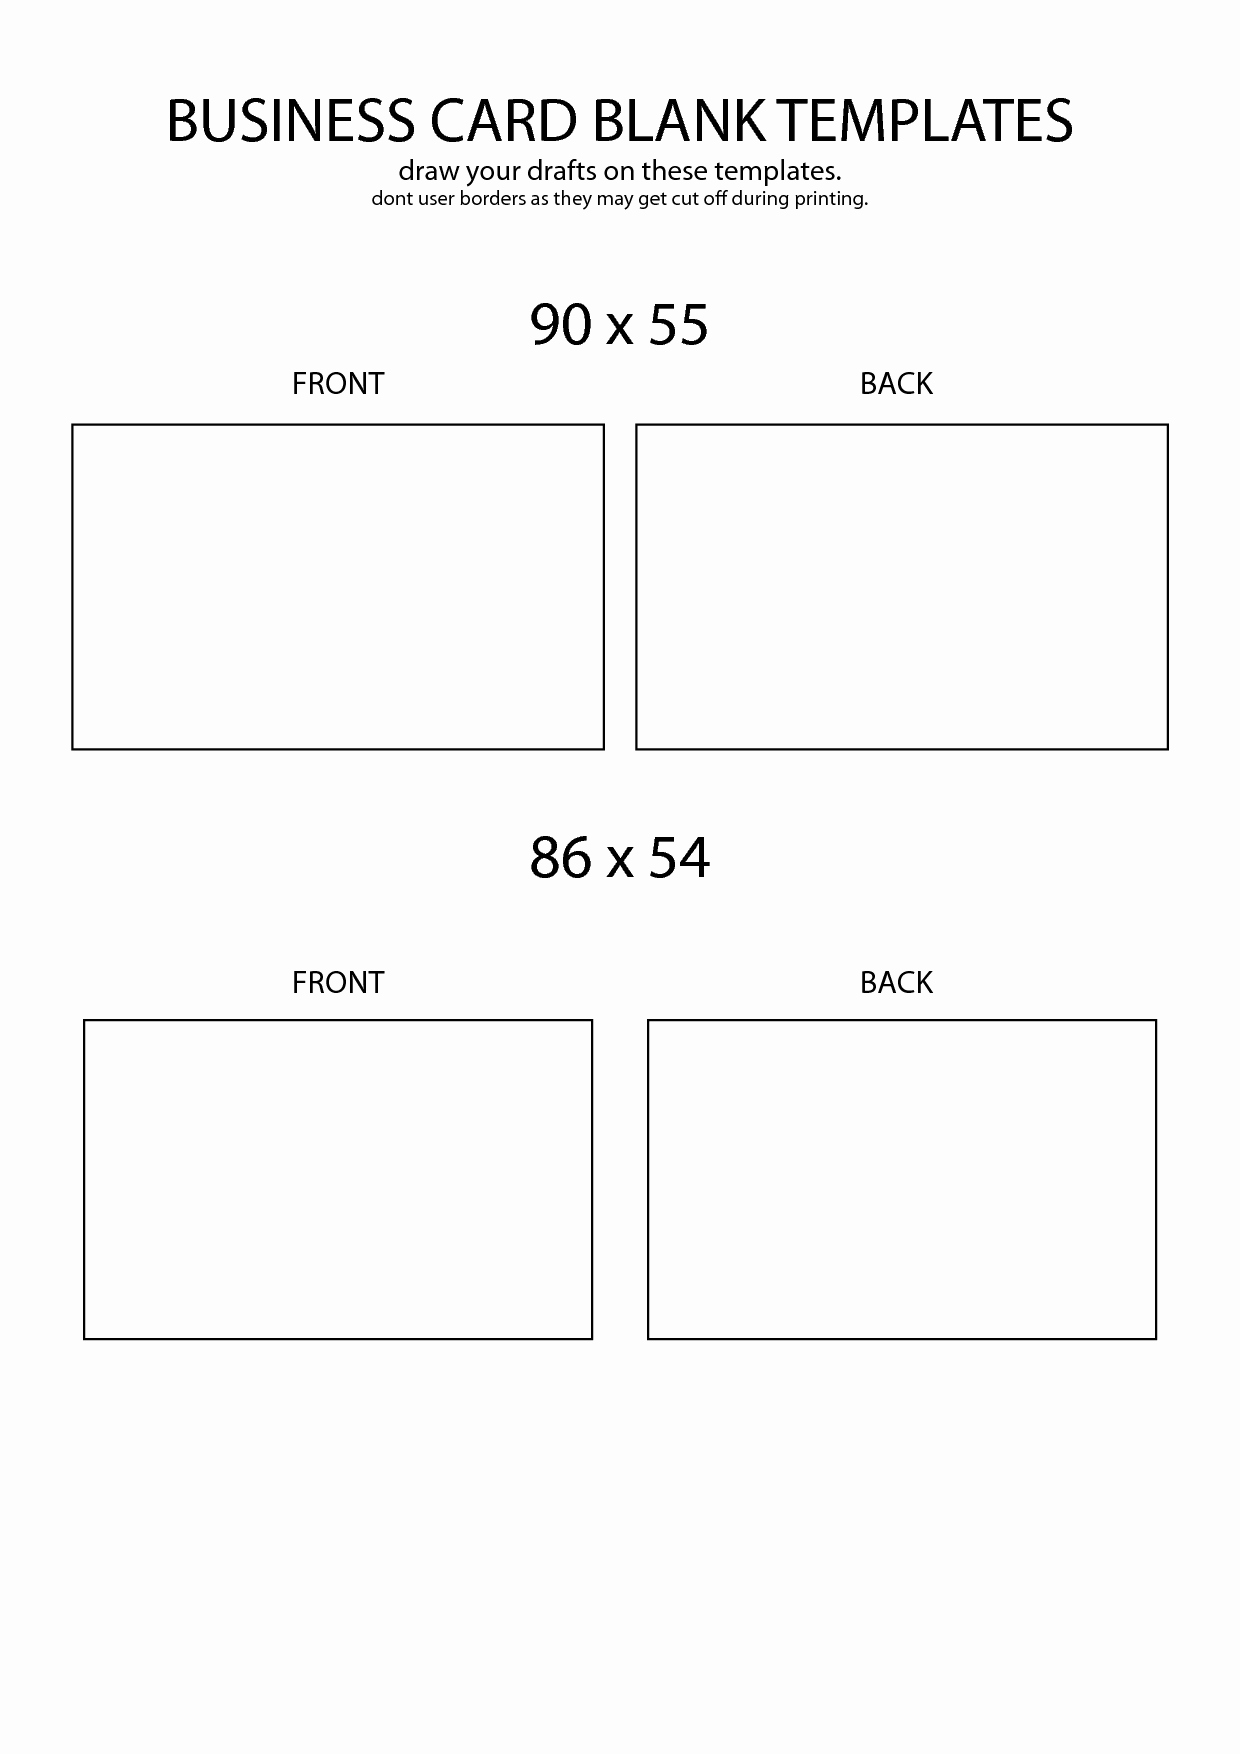 Business Card Template Free Printable Fresh Plain Business Cards